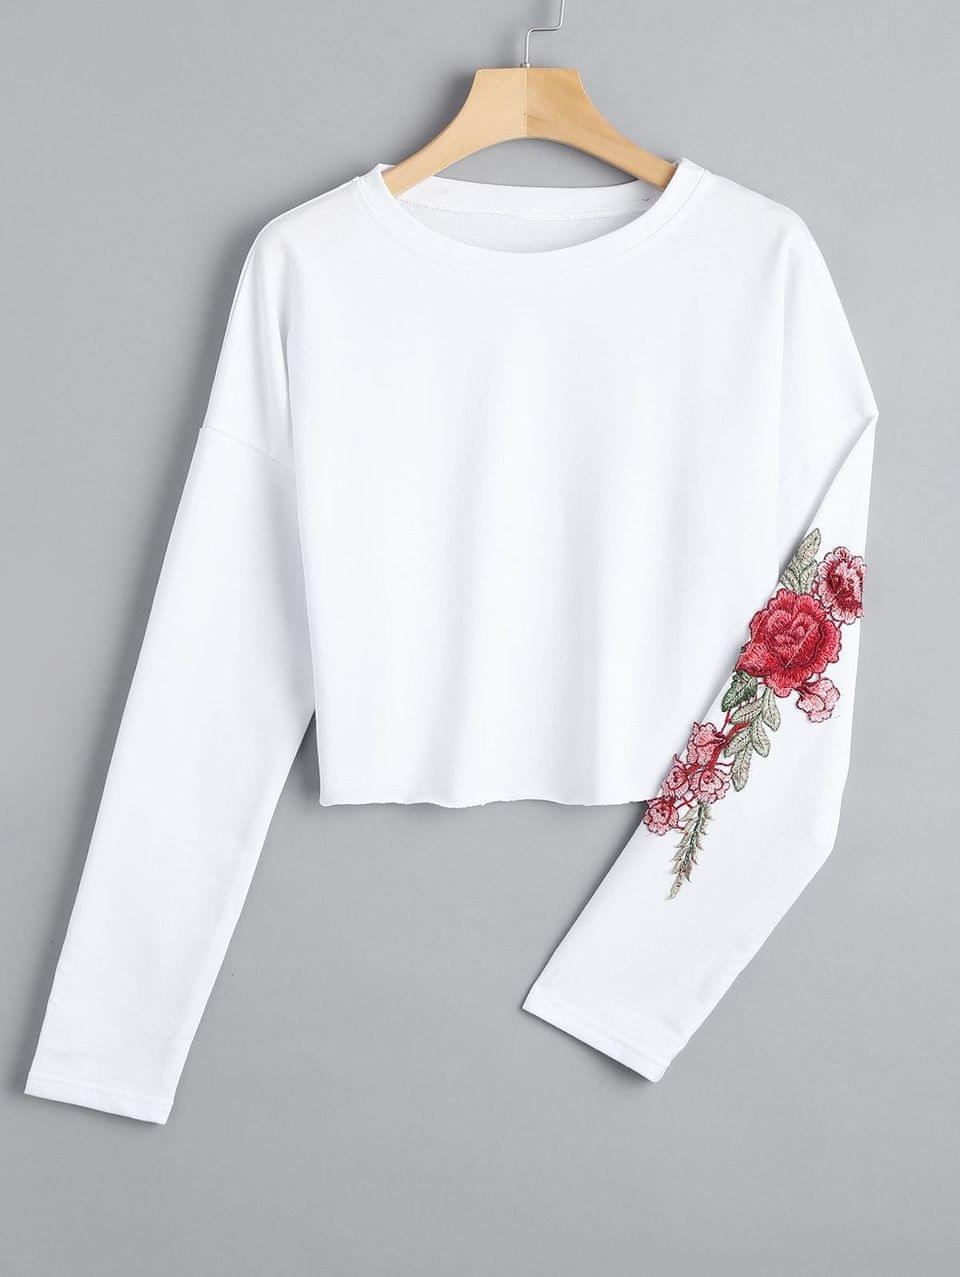 Women's Cropped Floral Embroidered Patches Sweatshirt - White Xl